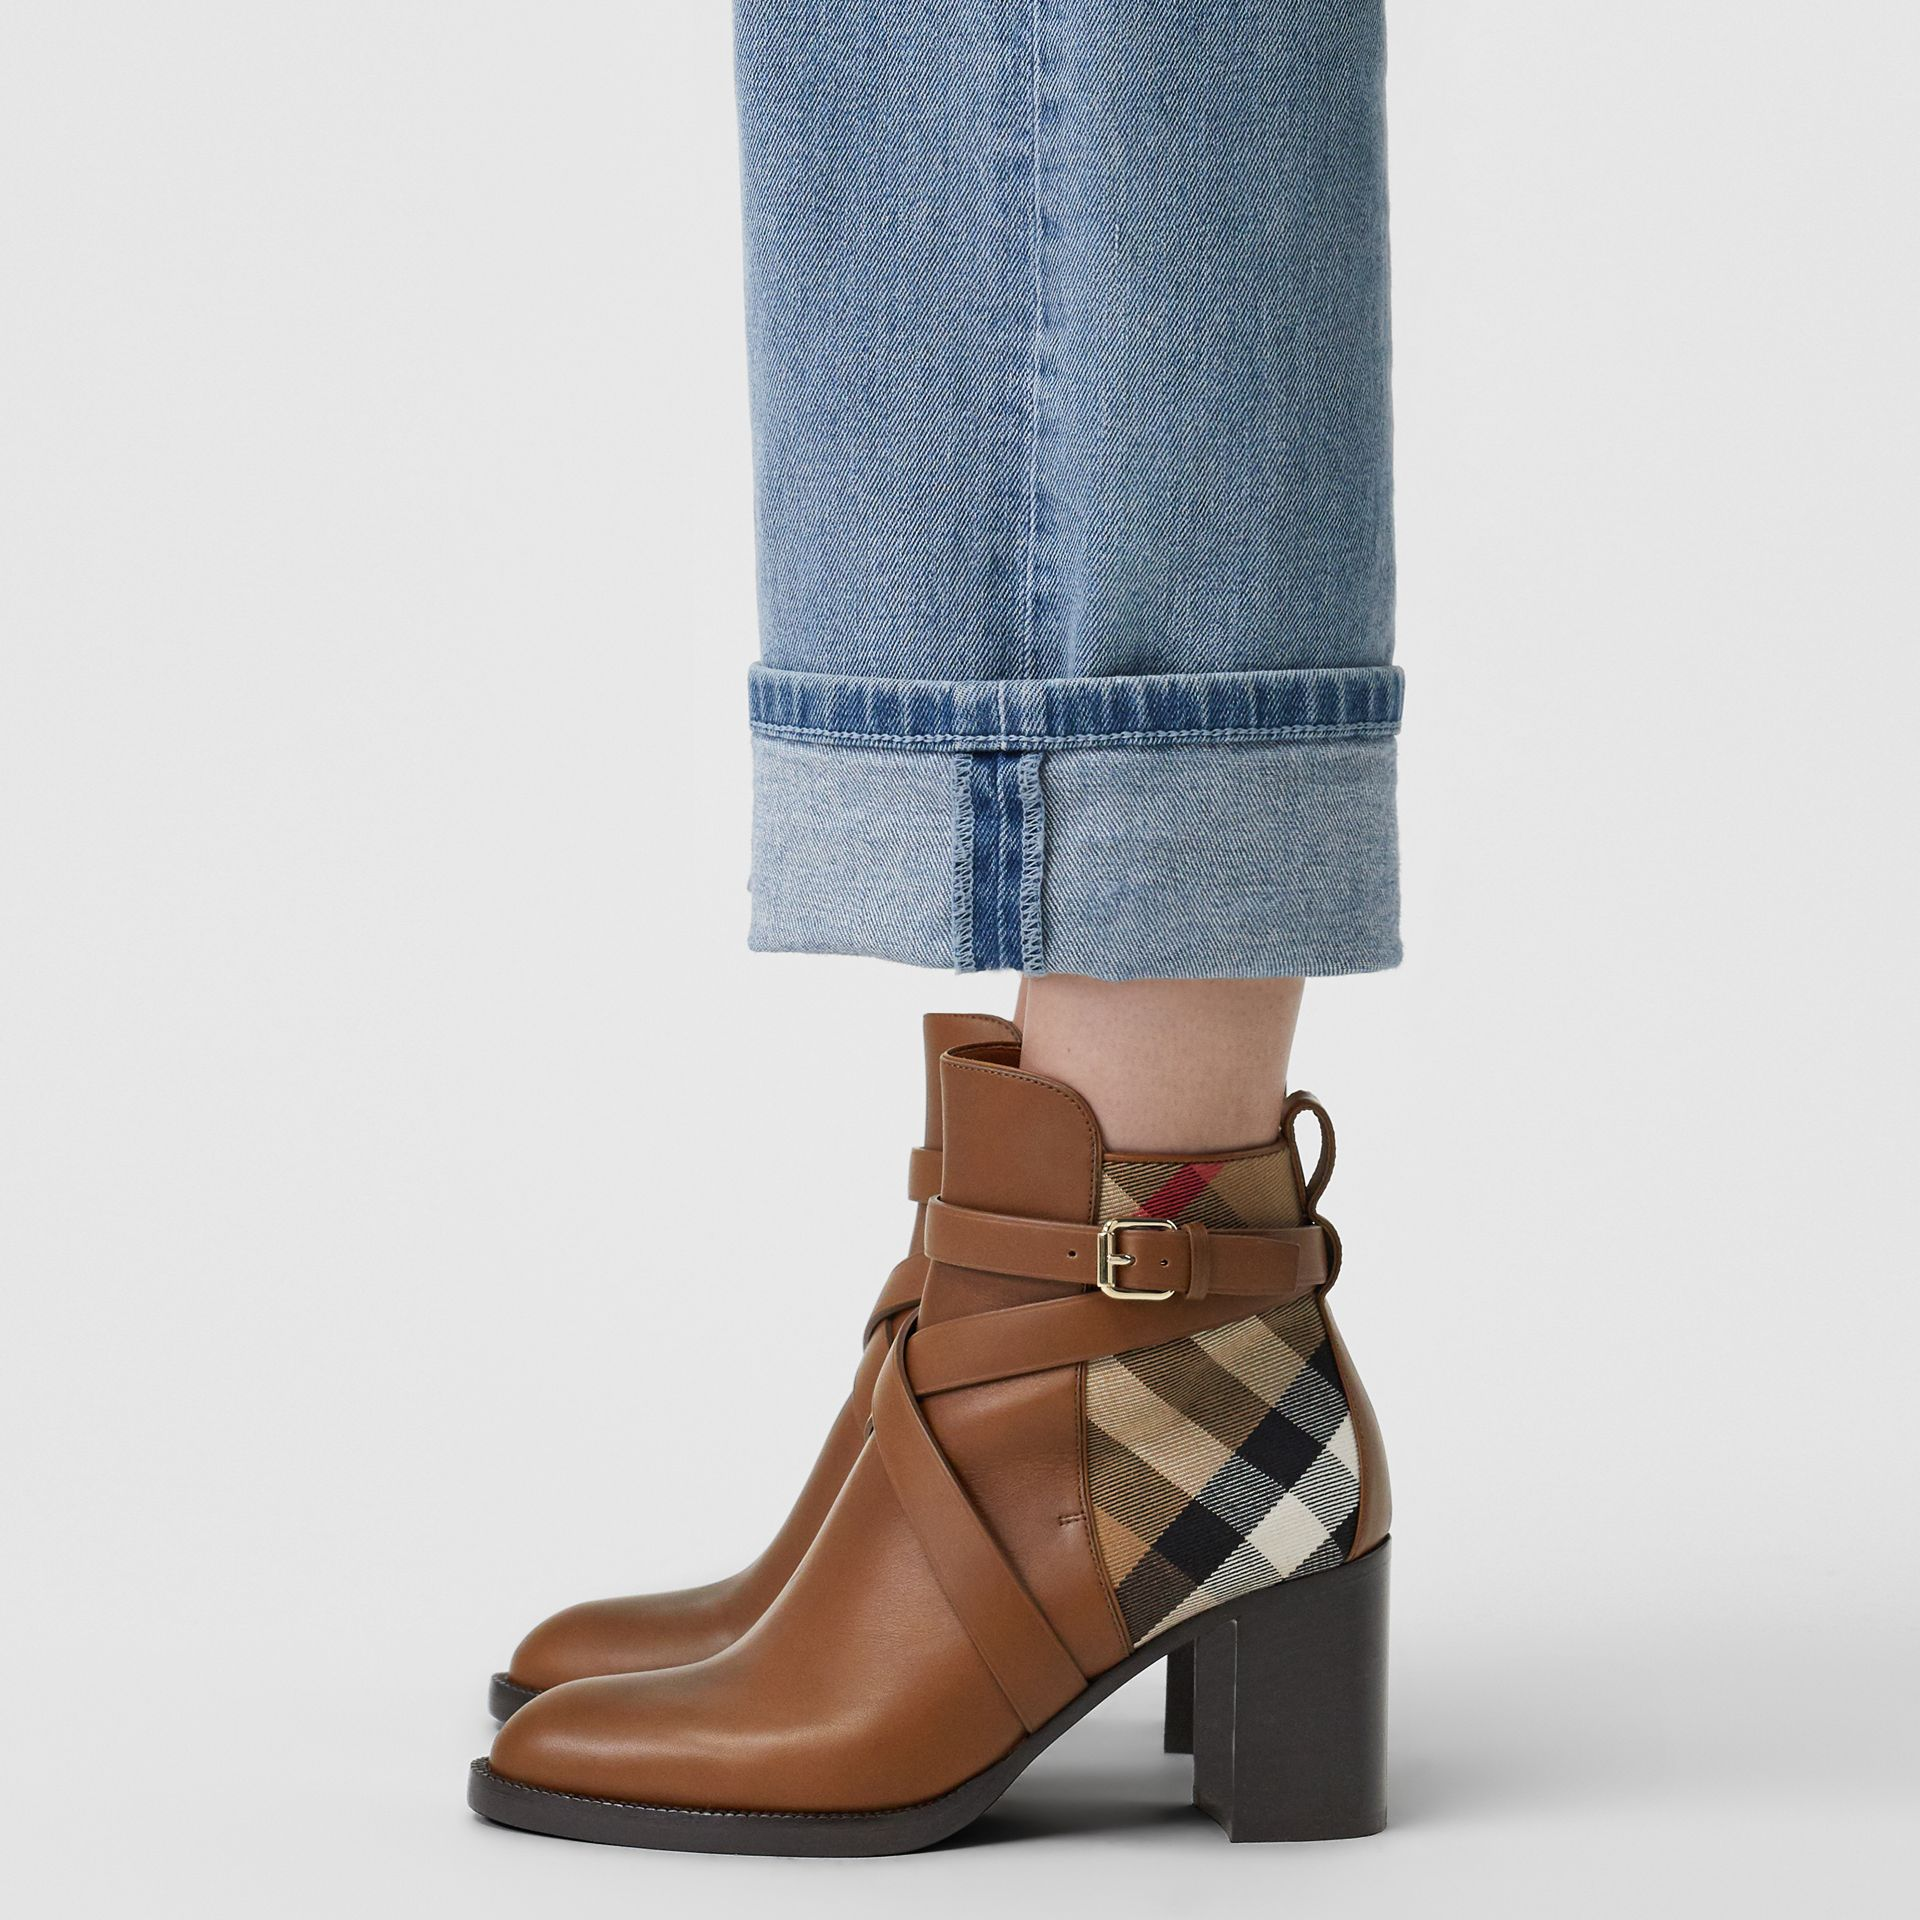 House Check and Leather Ankle Boots in Bright Camel - Women | Burberry United States - gallery image 2